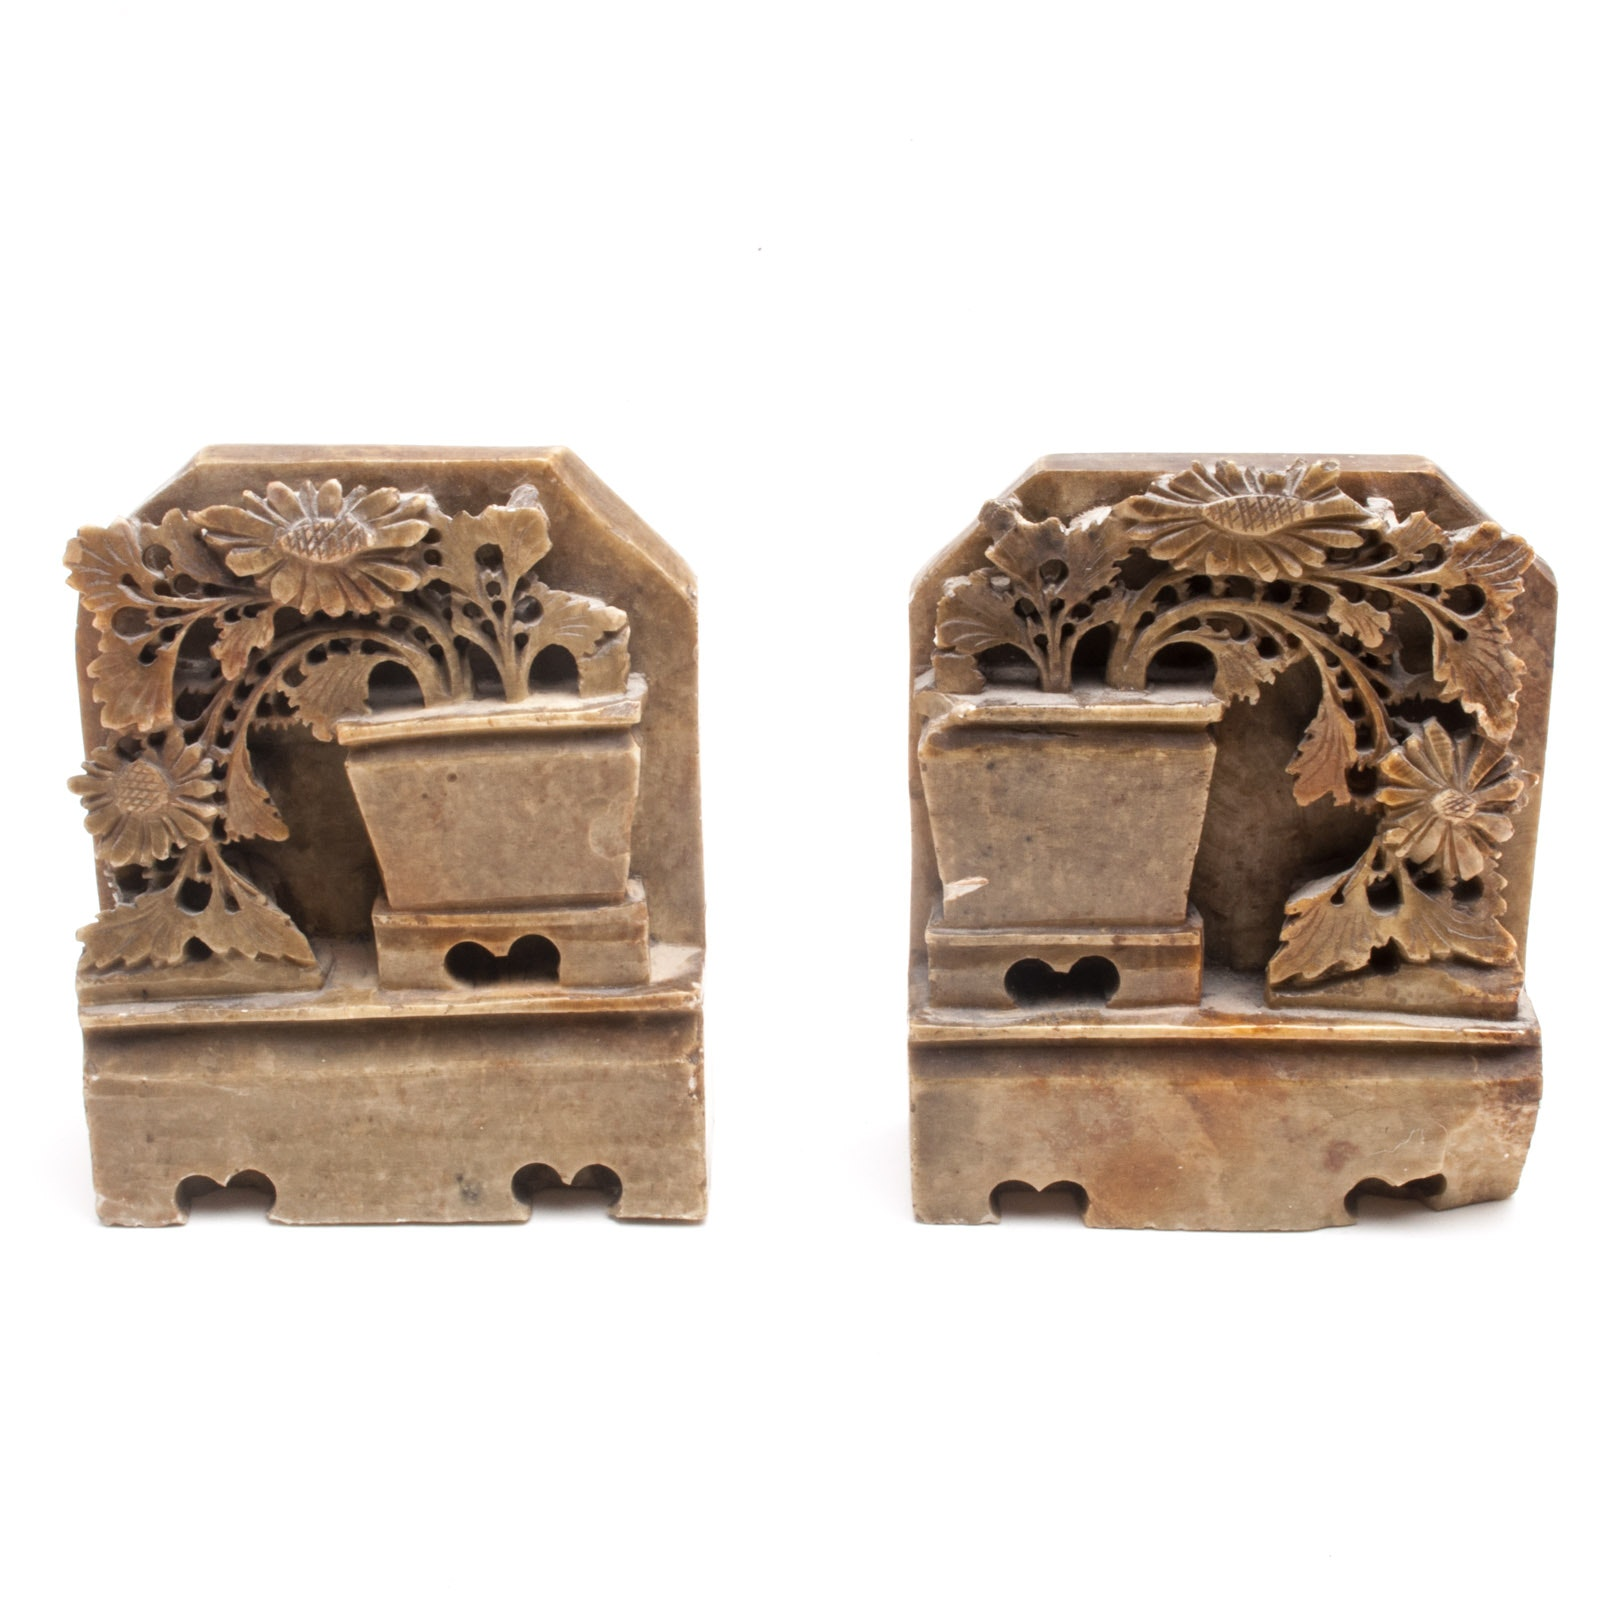 Pair of Chinese Carved Floral Motif Soapstone Bookends